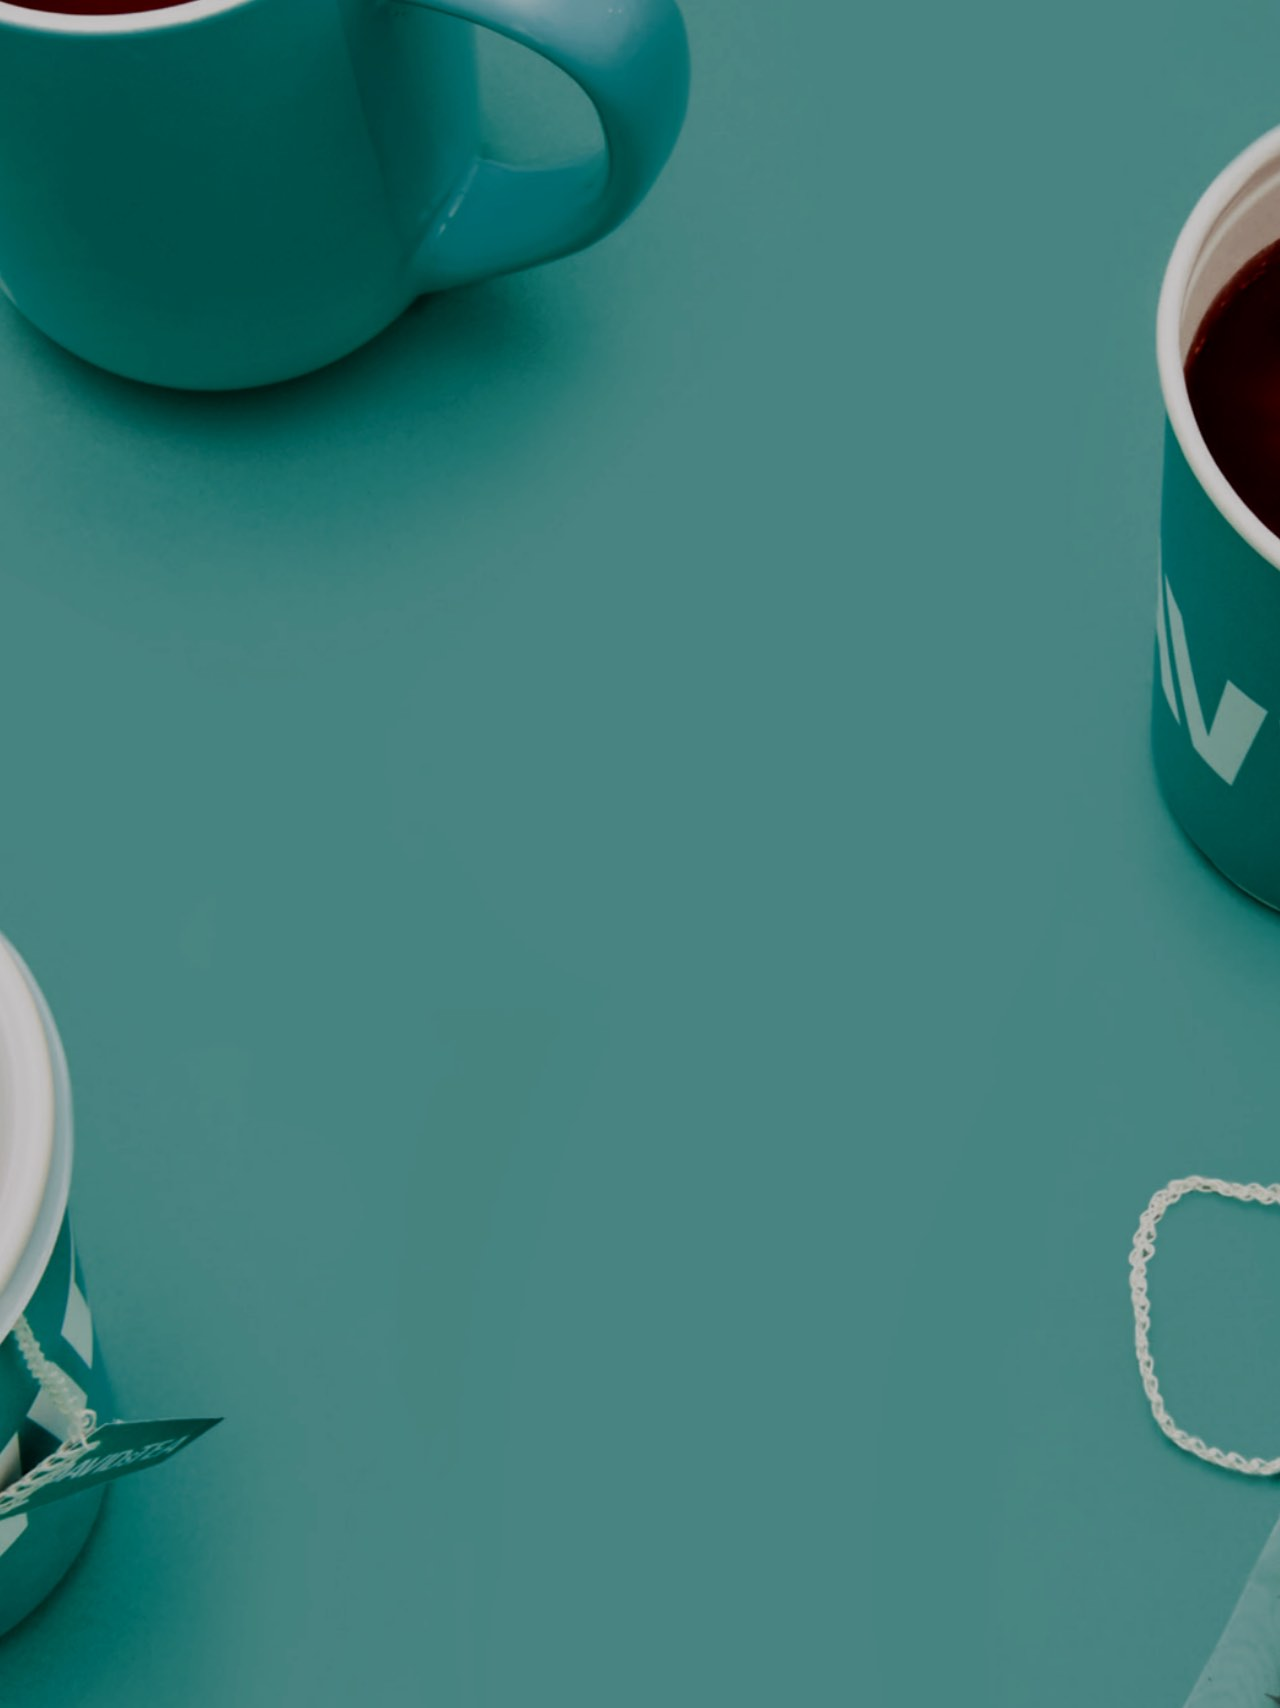 Two DAVIDsTEA to-go cups with tea and lid. Clear 16 oz glass mug with tea and sachet. Two 16 oz teal ceramic mugs with tea.